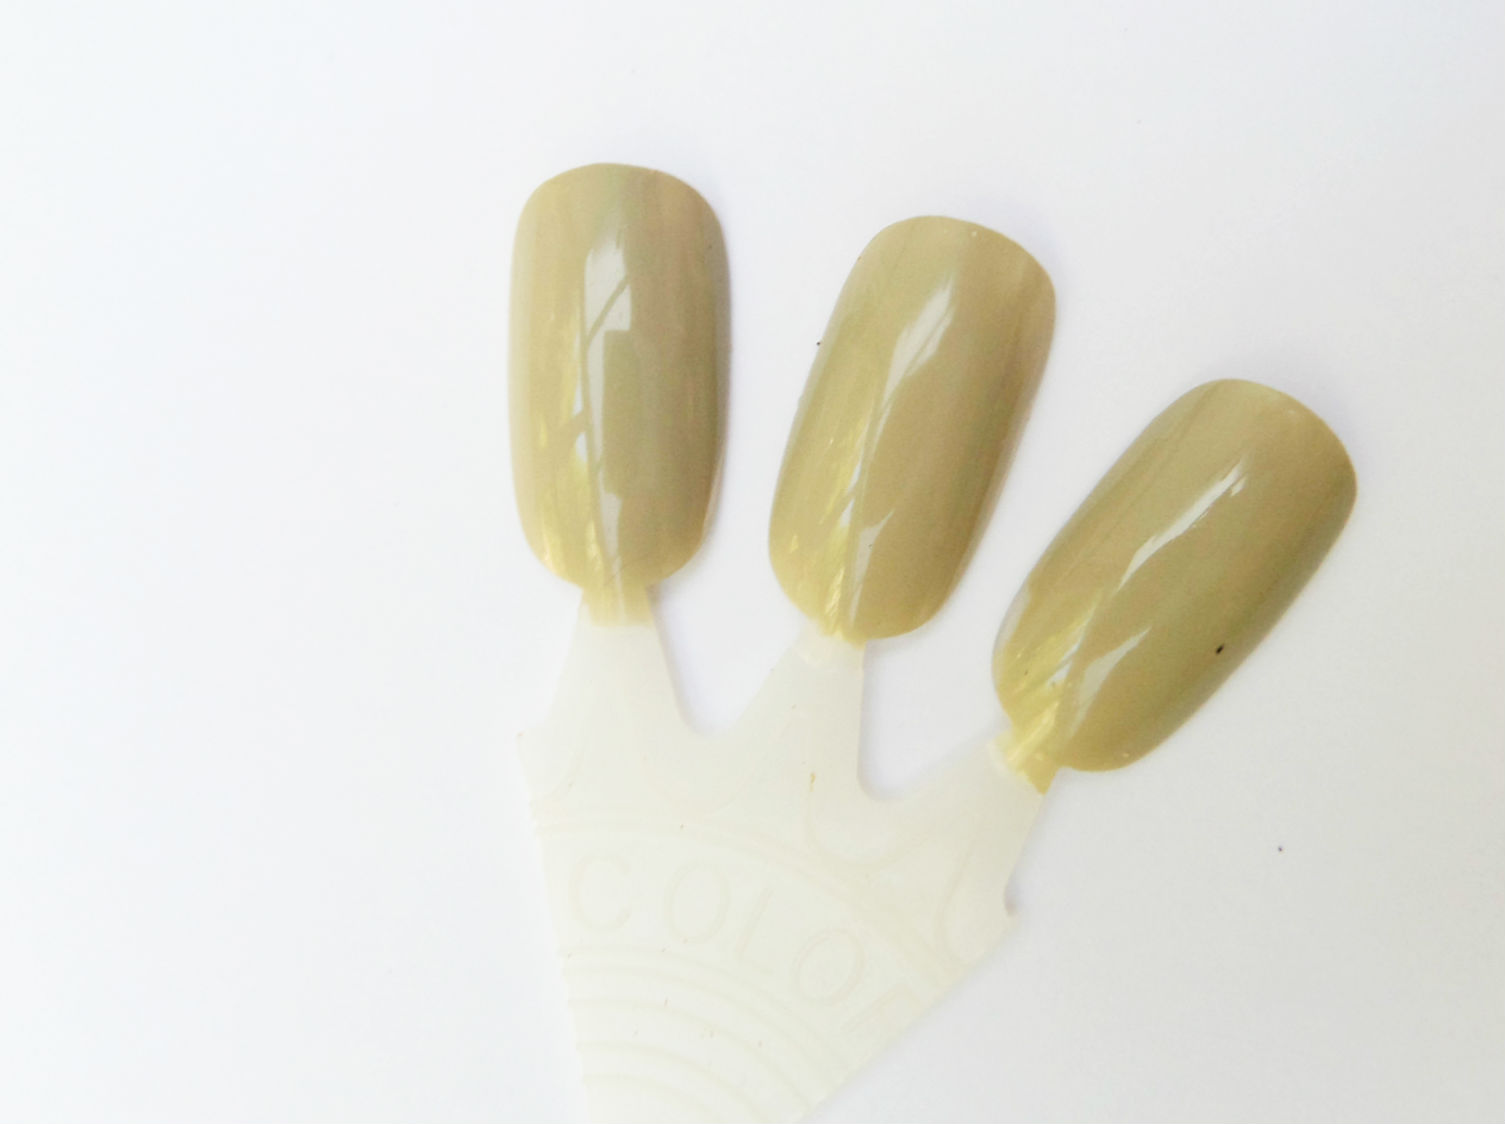 Barry M Gelly Nail Polish in Olive